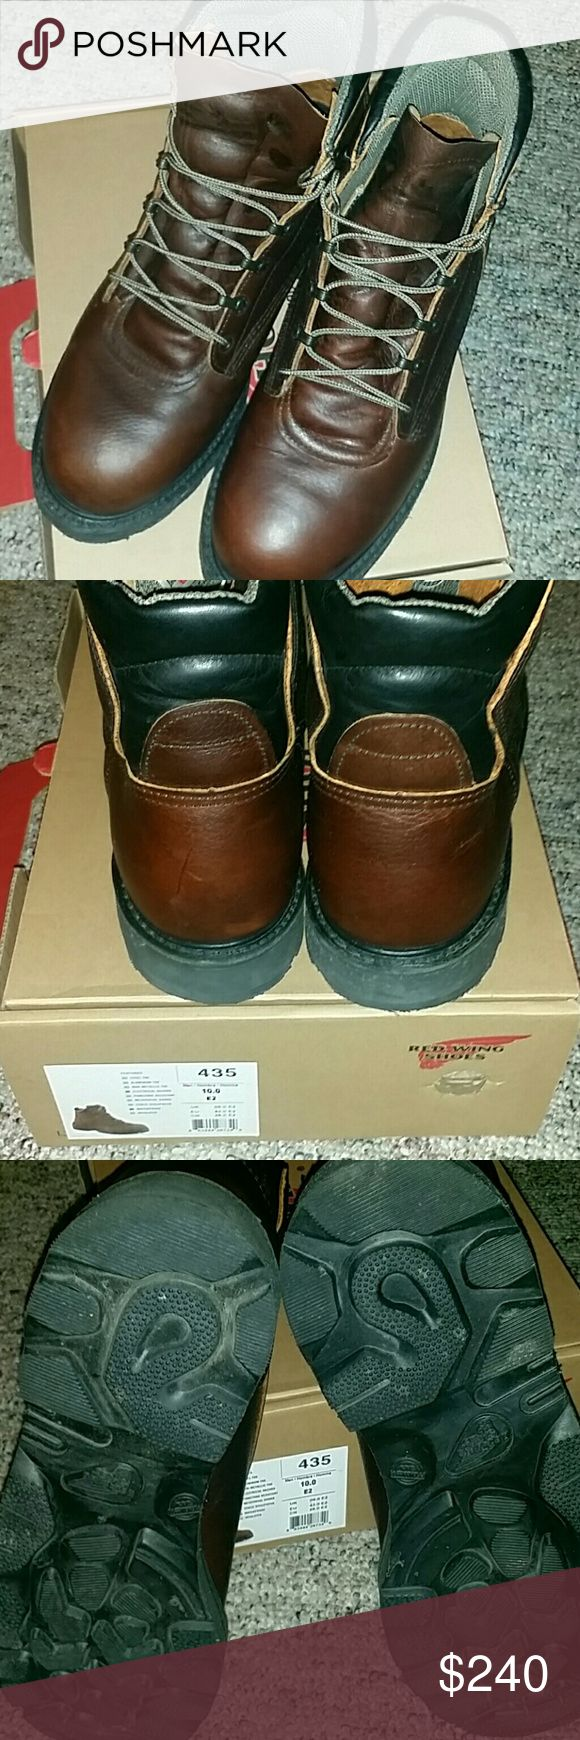 💥NIB RED WING WORK BOOTS NIB RED WING WORK BOOTS  *ELECTRICAL HAZARD *WATERPROOF  STYLE #435 MEN'S*HOMBRE*HOMME  SIZE US 10, UK 9.0, EU 43.0, CM 28.0 RETAIL PRICE  $350.00 WILL ACCEPT REASONABLE OFFERS! Red Wing Shoes Shoes Boots